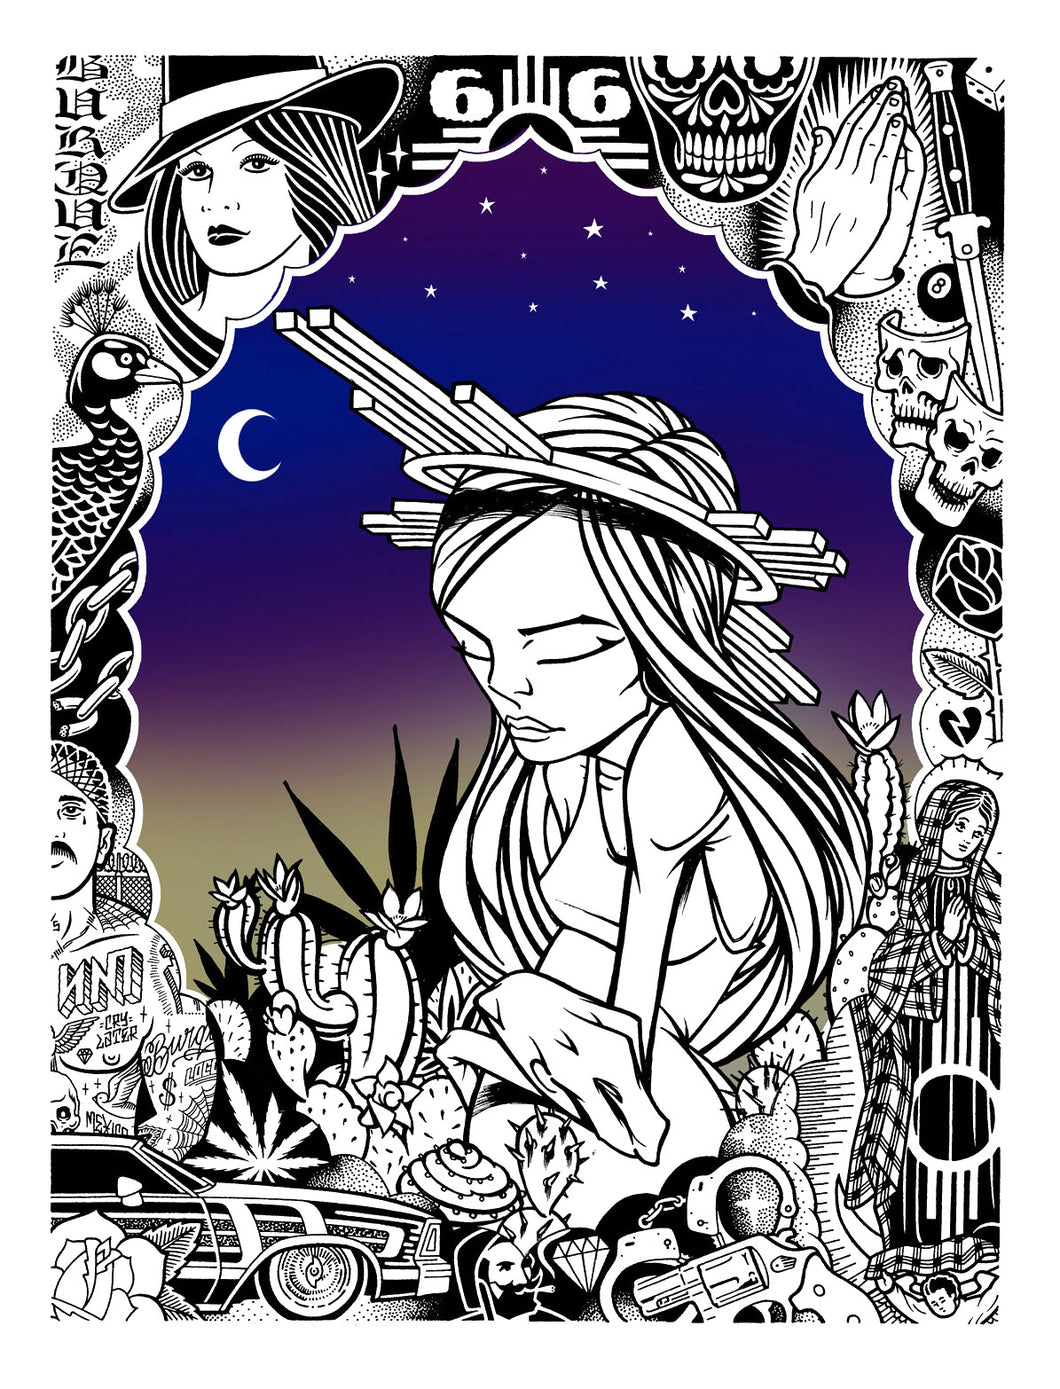 Kactus Kids Nighttime Collab (Print) - Sam Flores & Mike Giant